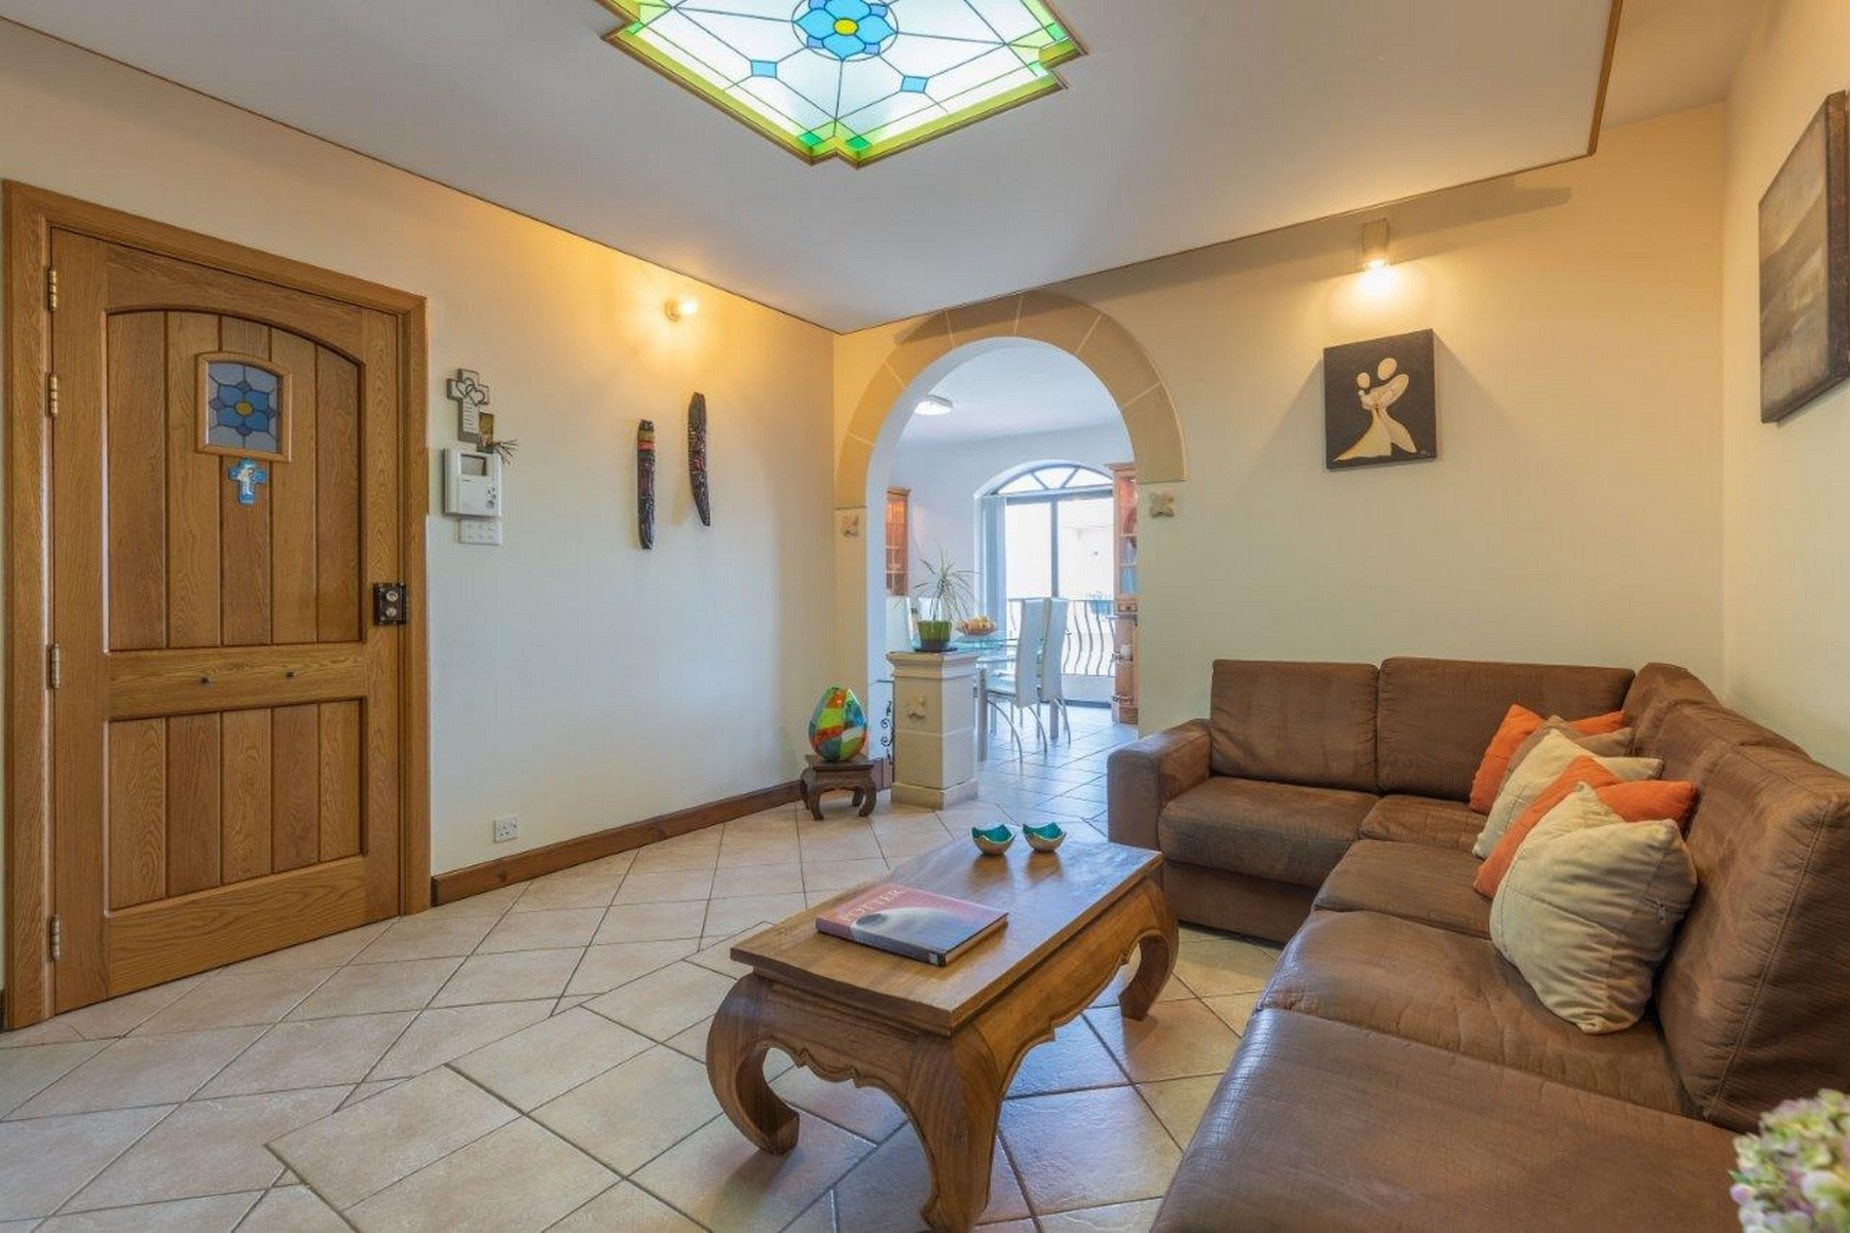 3 bed Apartment For Sale in Attard, Attard - thumb 7